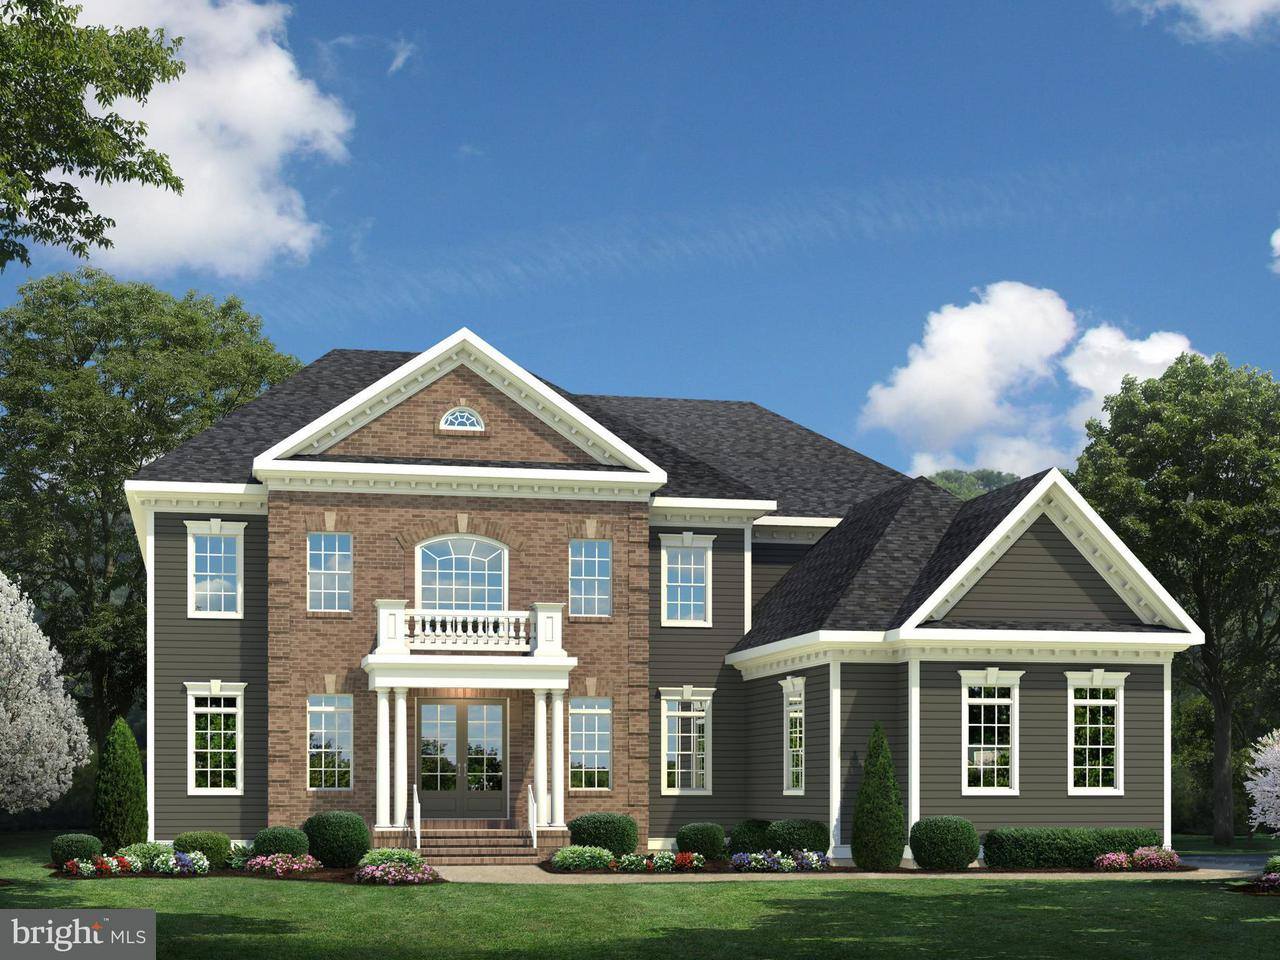 Single Family Home for Sale at LINWOOD MANOR Place LINWOOD MANOR Place Ashburn, Virginia 20148 United States